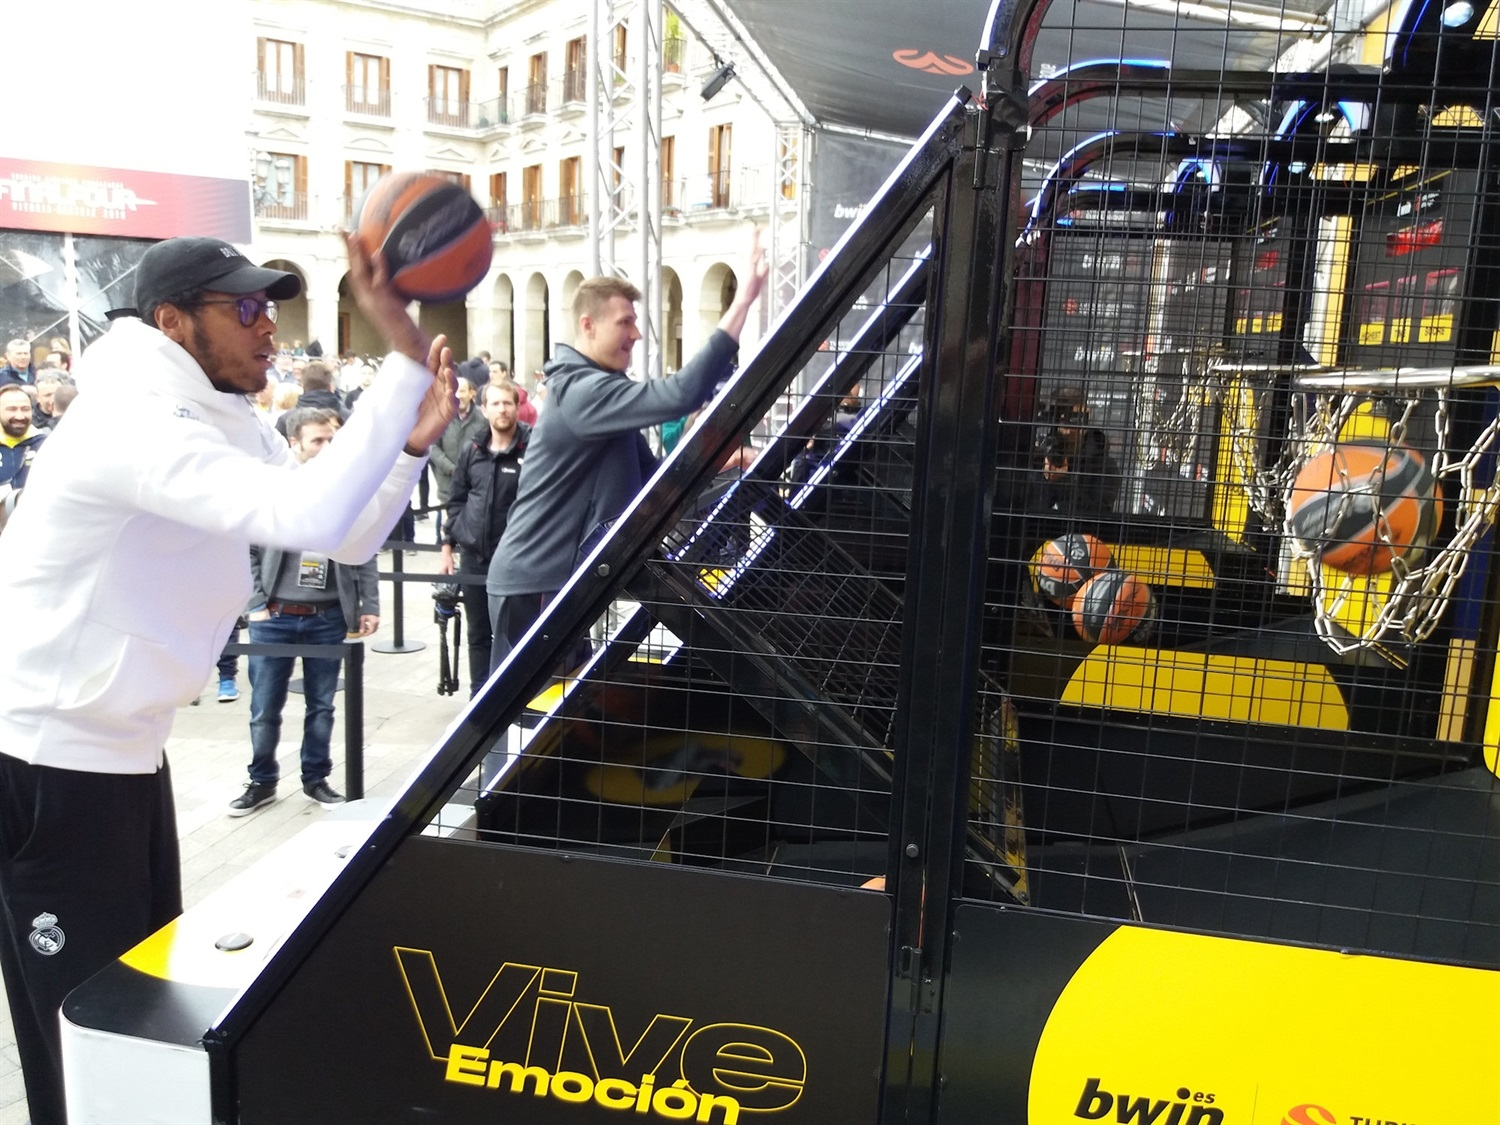 Trey Thompkins and Andrey Vorontsevich - FanZone - Final Four Vitoria-Gasteiz 2019 - EB18